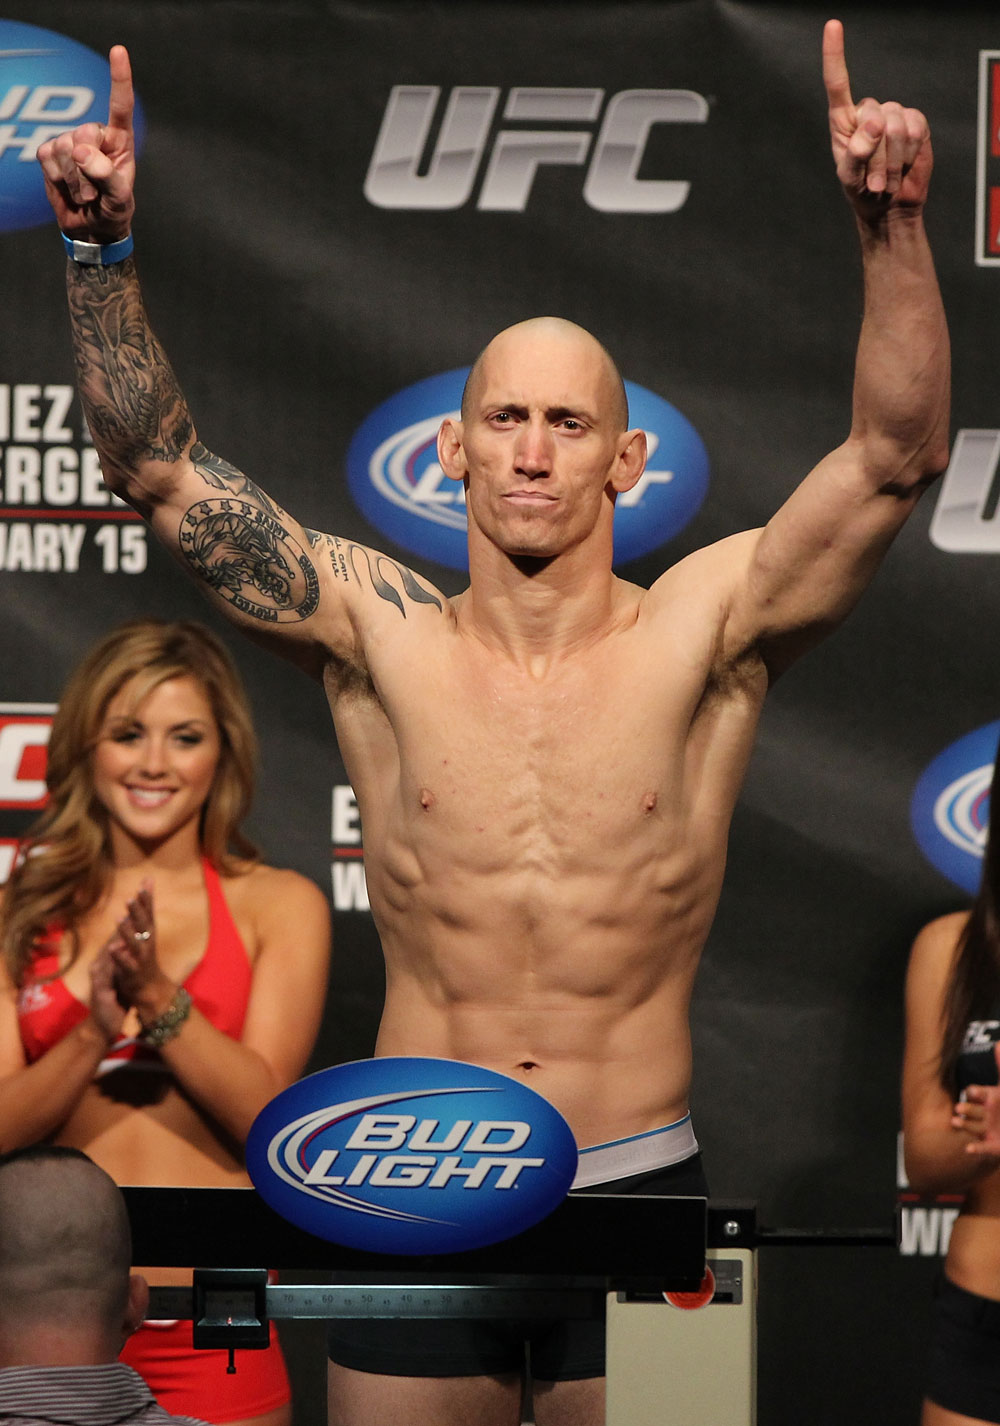 OMAHA, NE - FEBRUARY 14:  Buddy Roberts weighs in during the UFC on FUEL TV weigh in event at Omaha Civic Auditorium on February 14, 2012 in Omaha, Nebraska.  (Photo by Josh Hedges/Zuffa LLC/Zuffa LLC via Getty Images) *** Local Caption *** Buddy Roberts